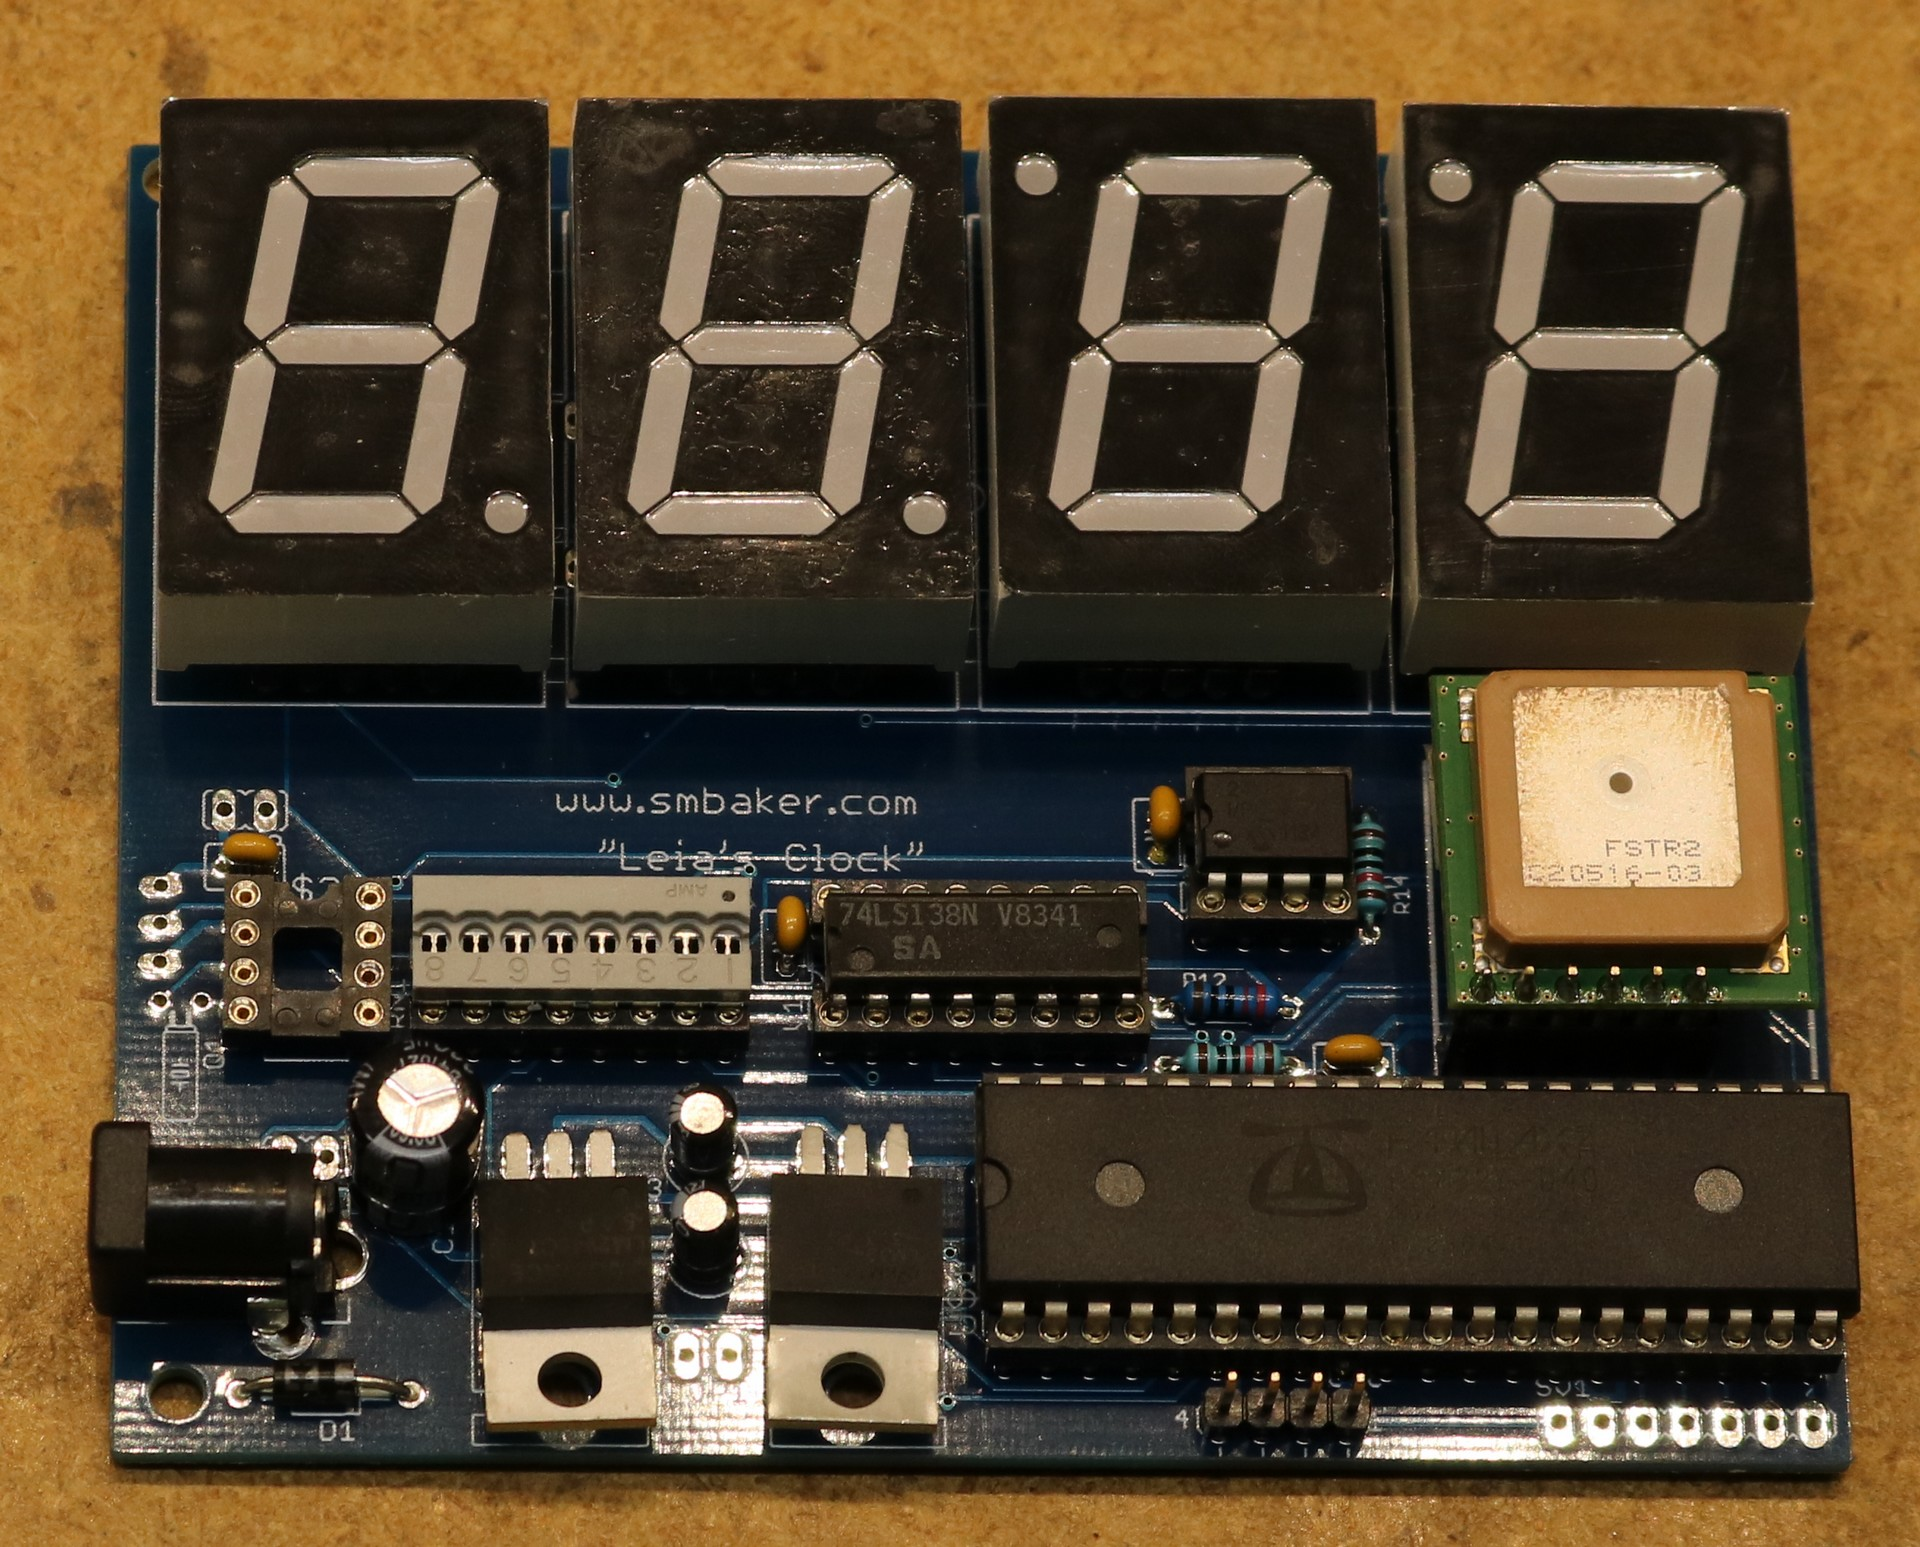 Leias Led Clock Dr Scott M Baker Using Pic Microcontroller Assembled Pcboard